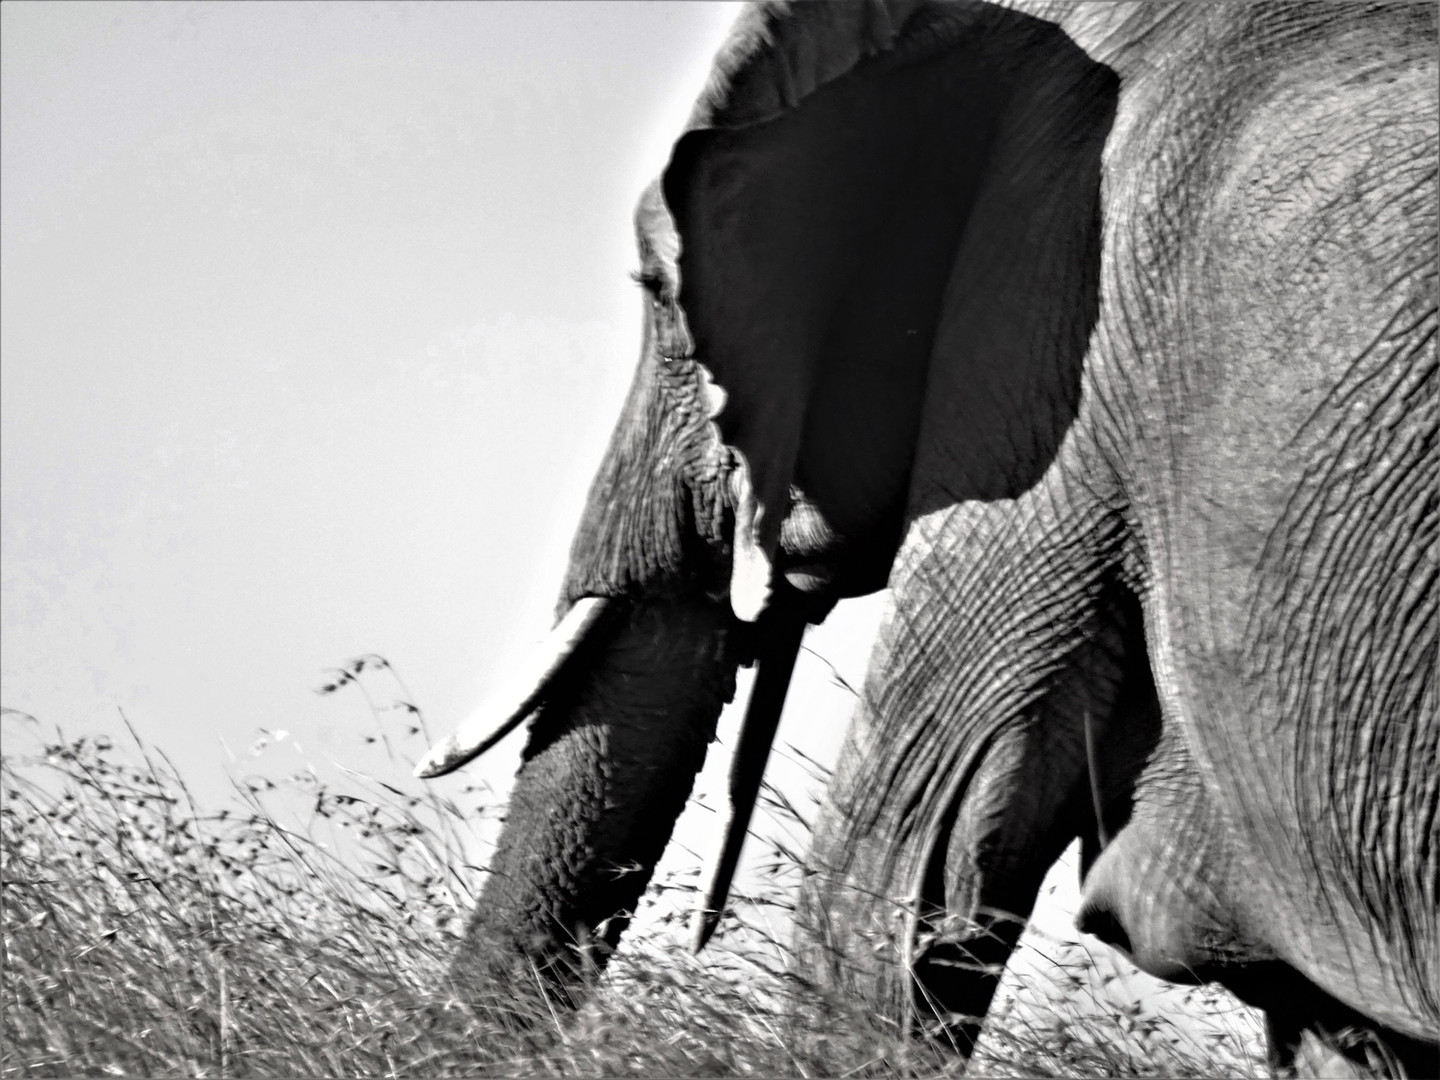 Elephant from the side